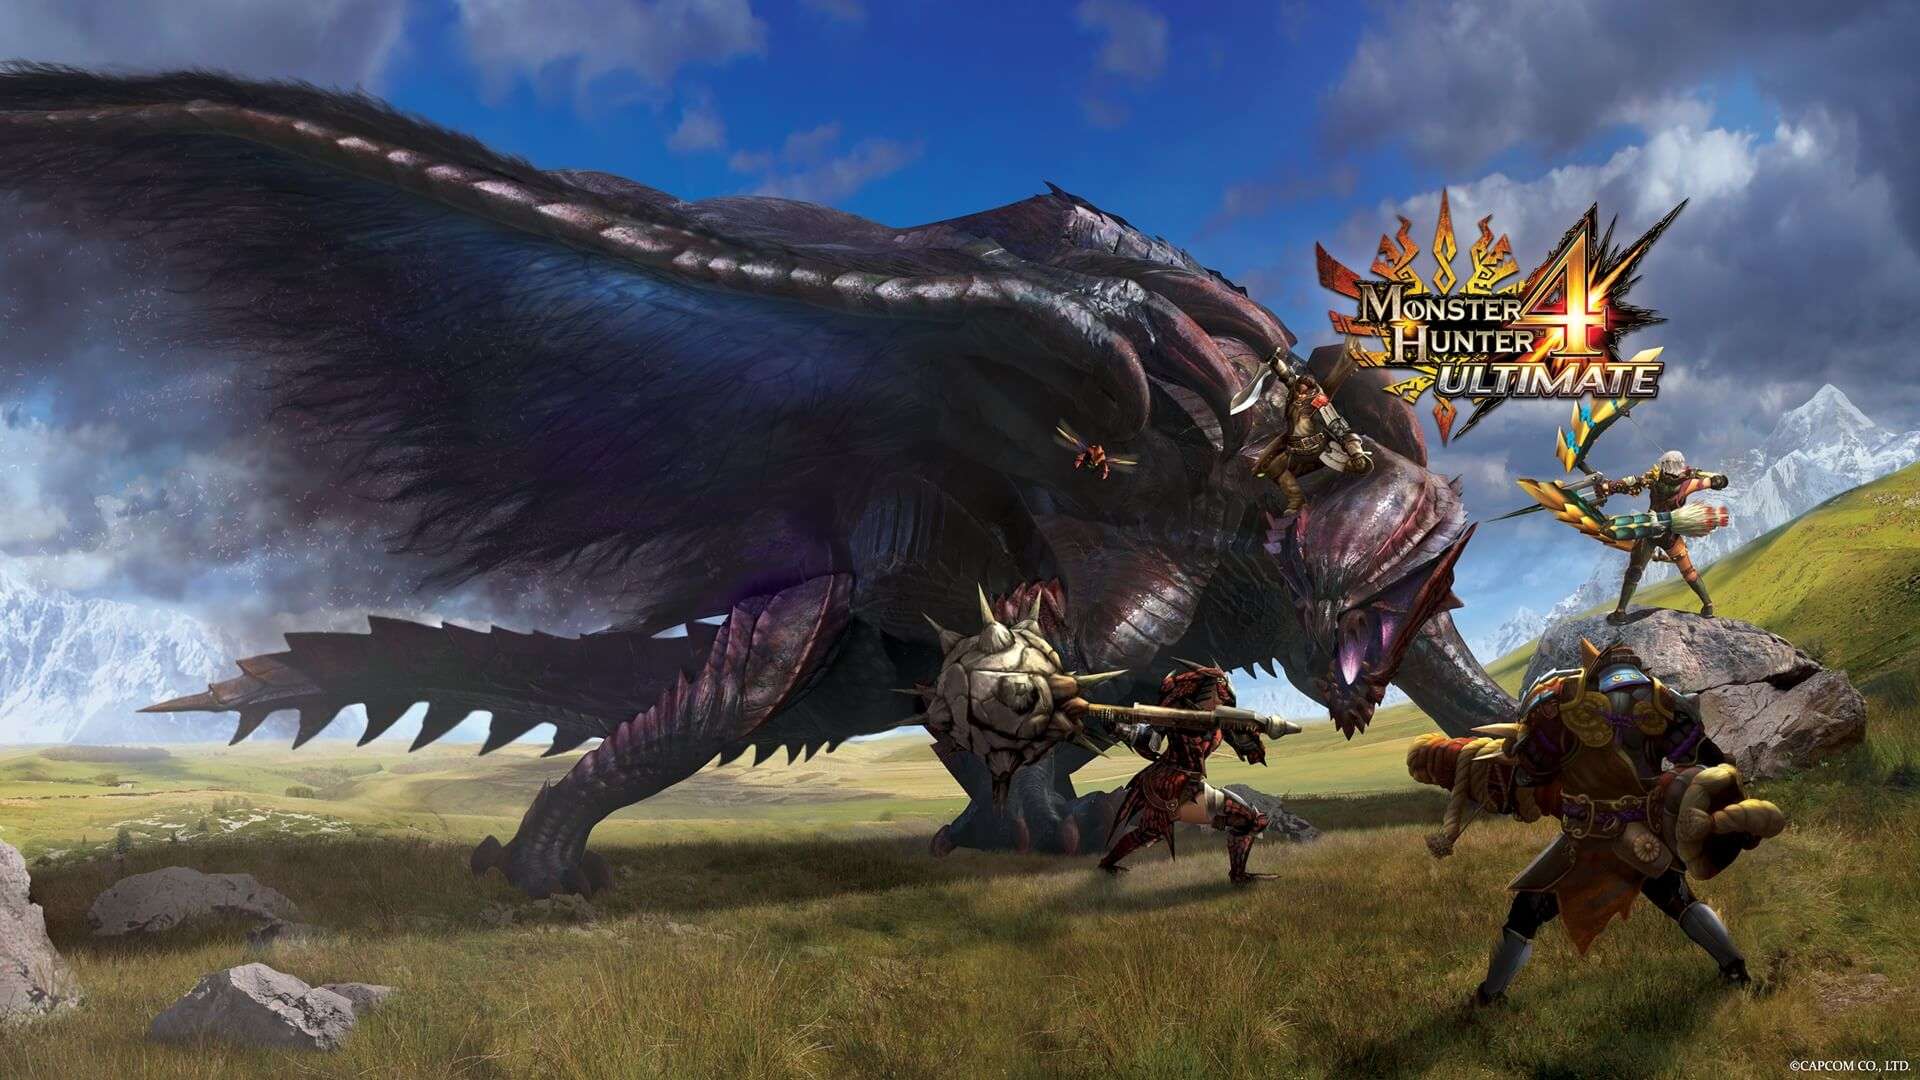 Monster Hunter 4 Ultimate Masthead